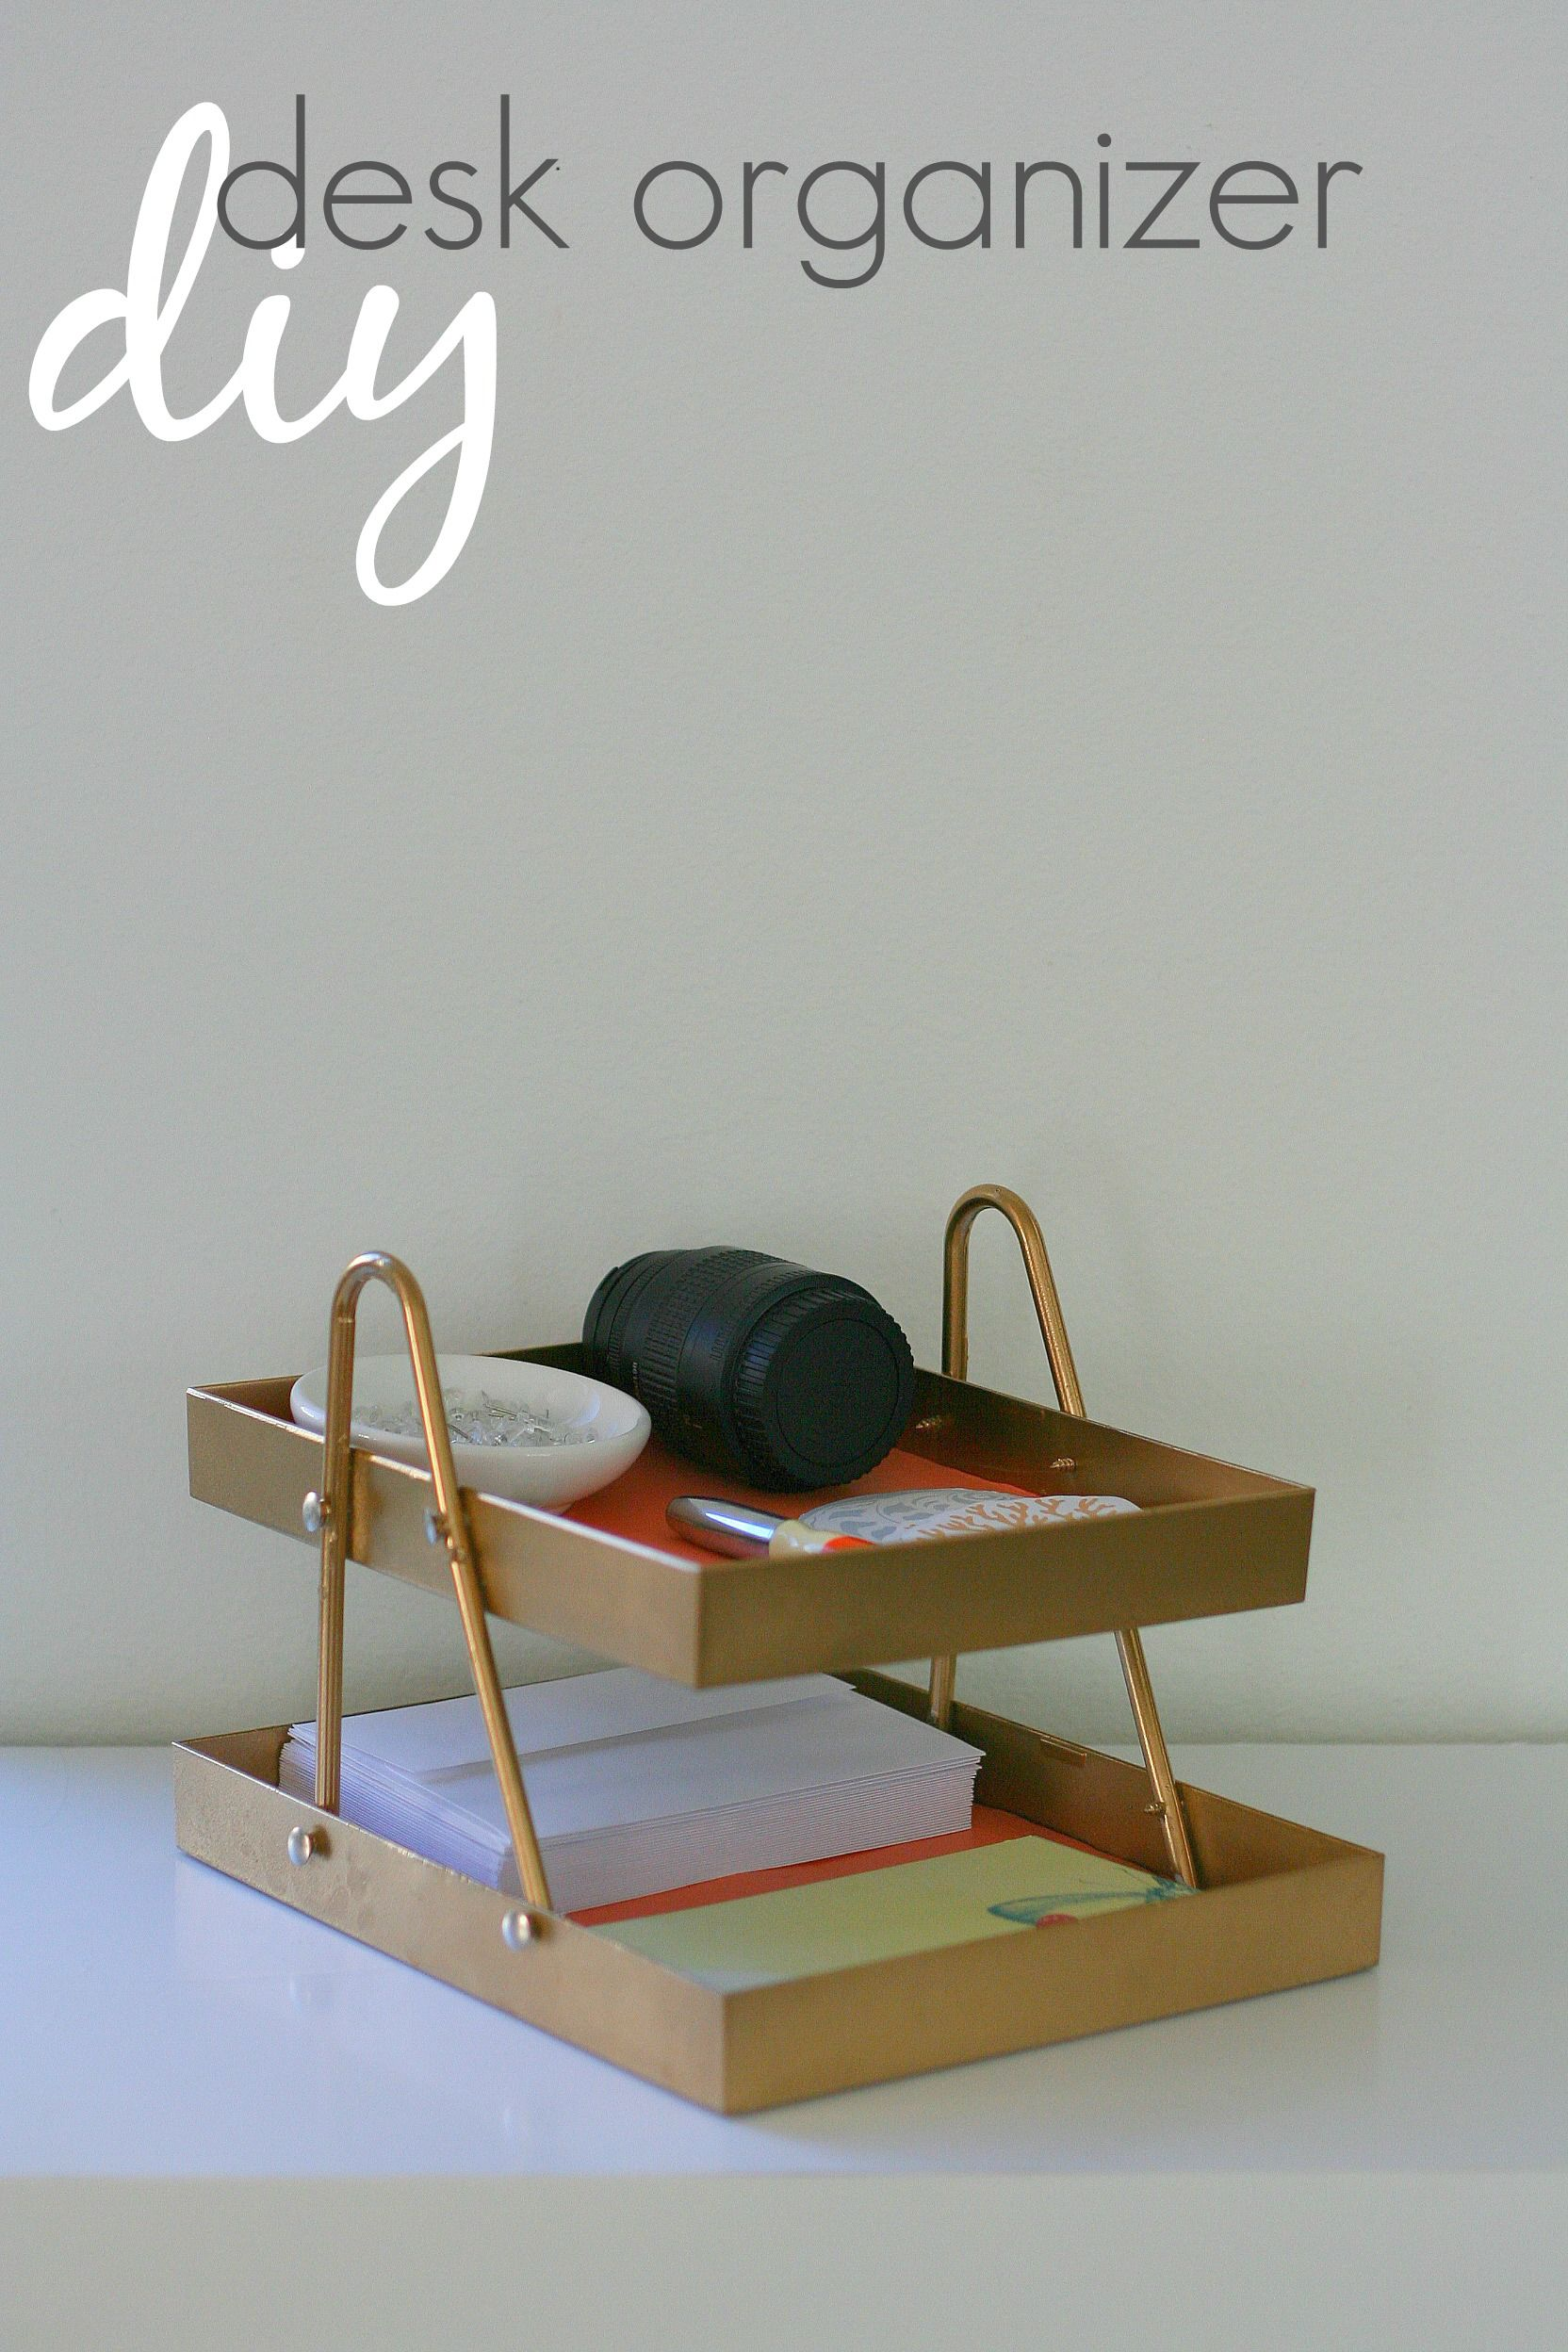 how-to-make-desk-organizer-from-a-hanger-and-two-frames.jpg 1,664×2,496 pixels